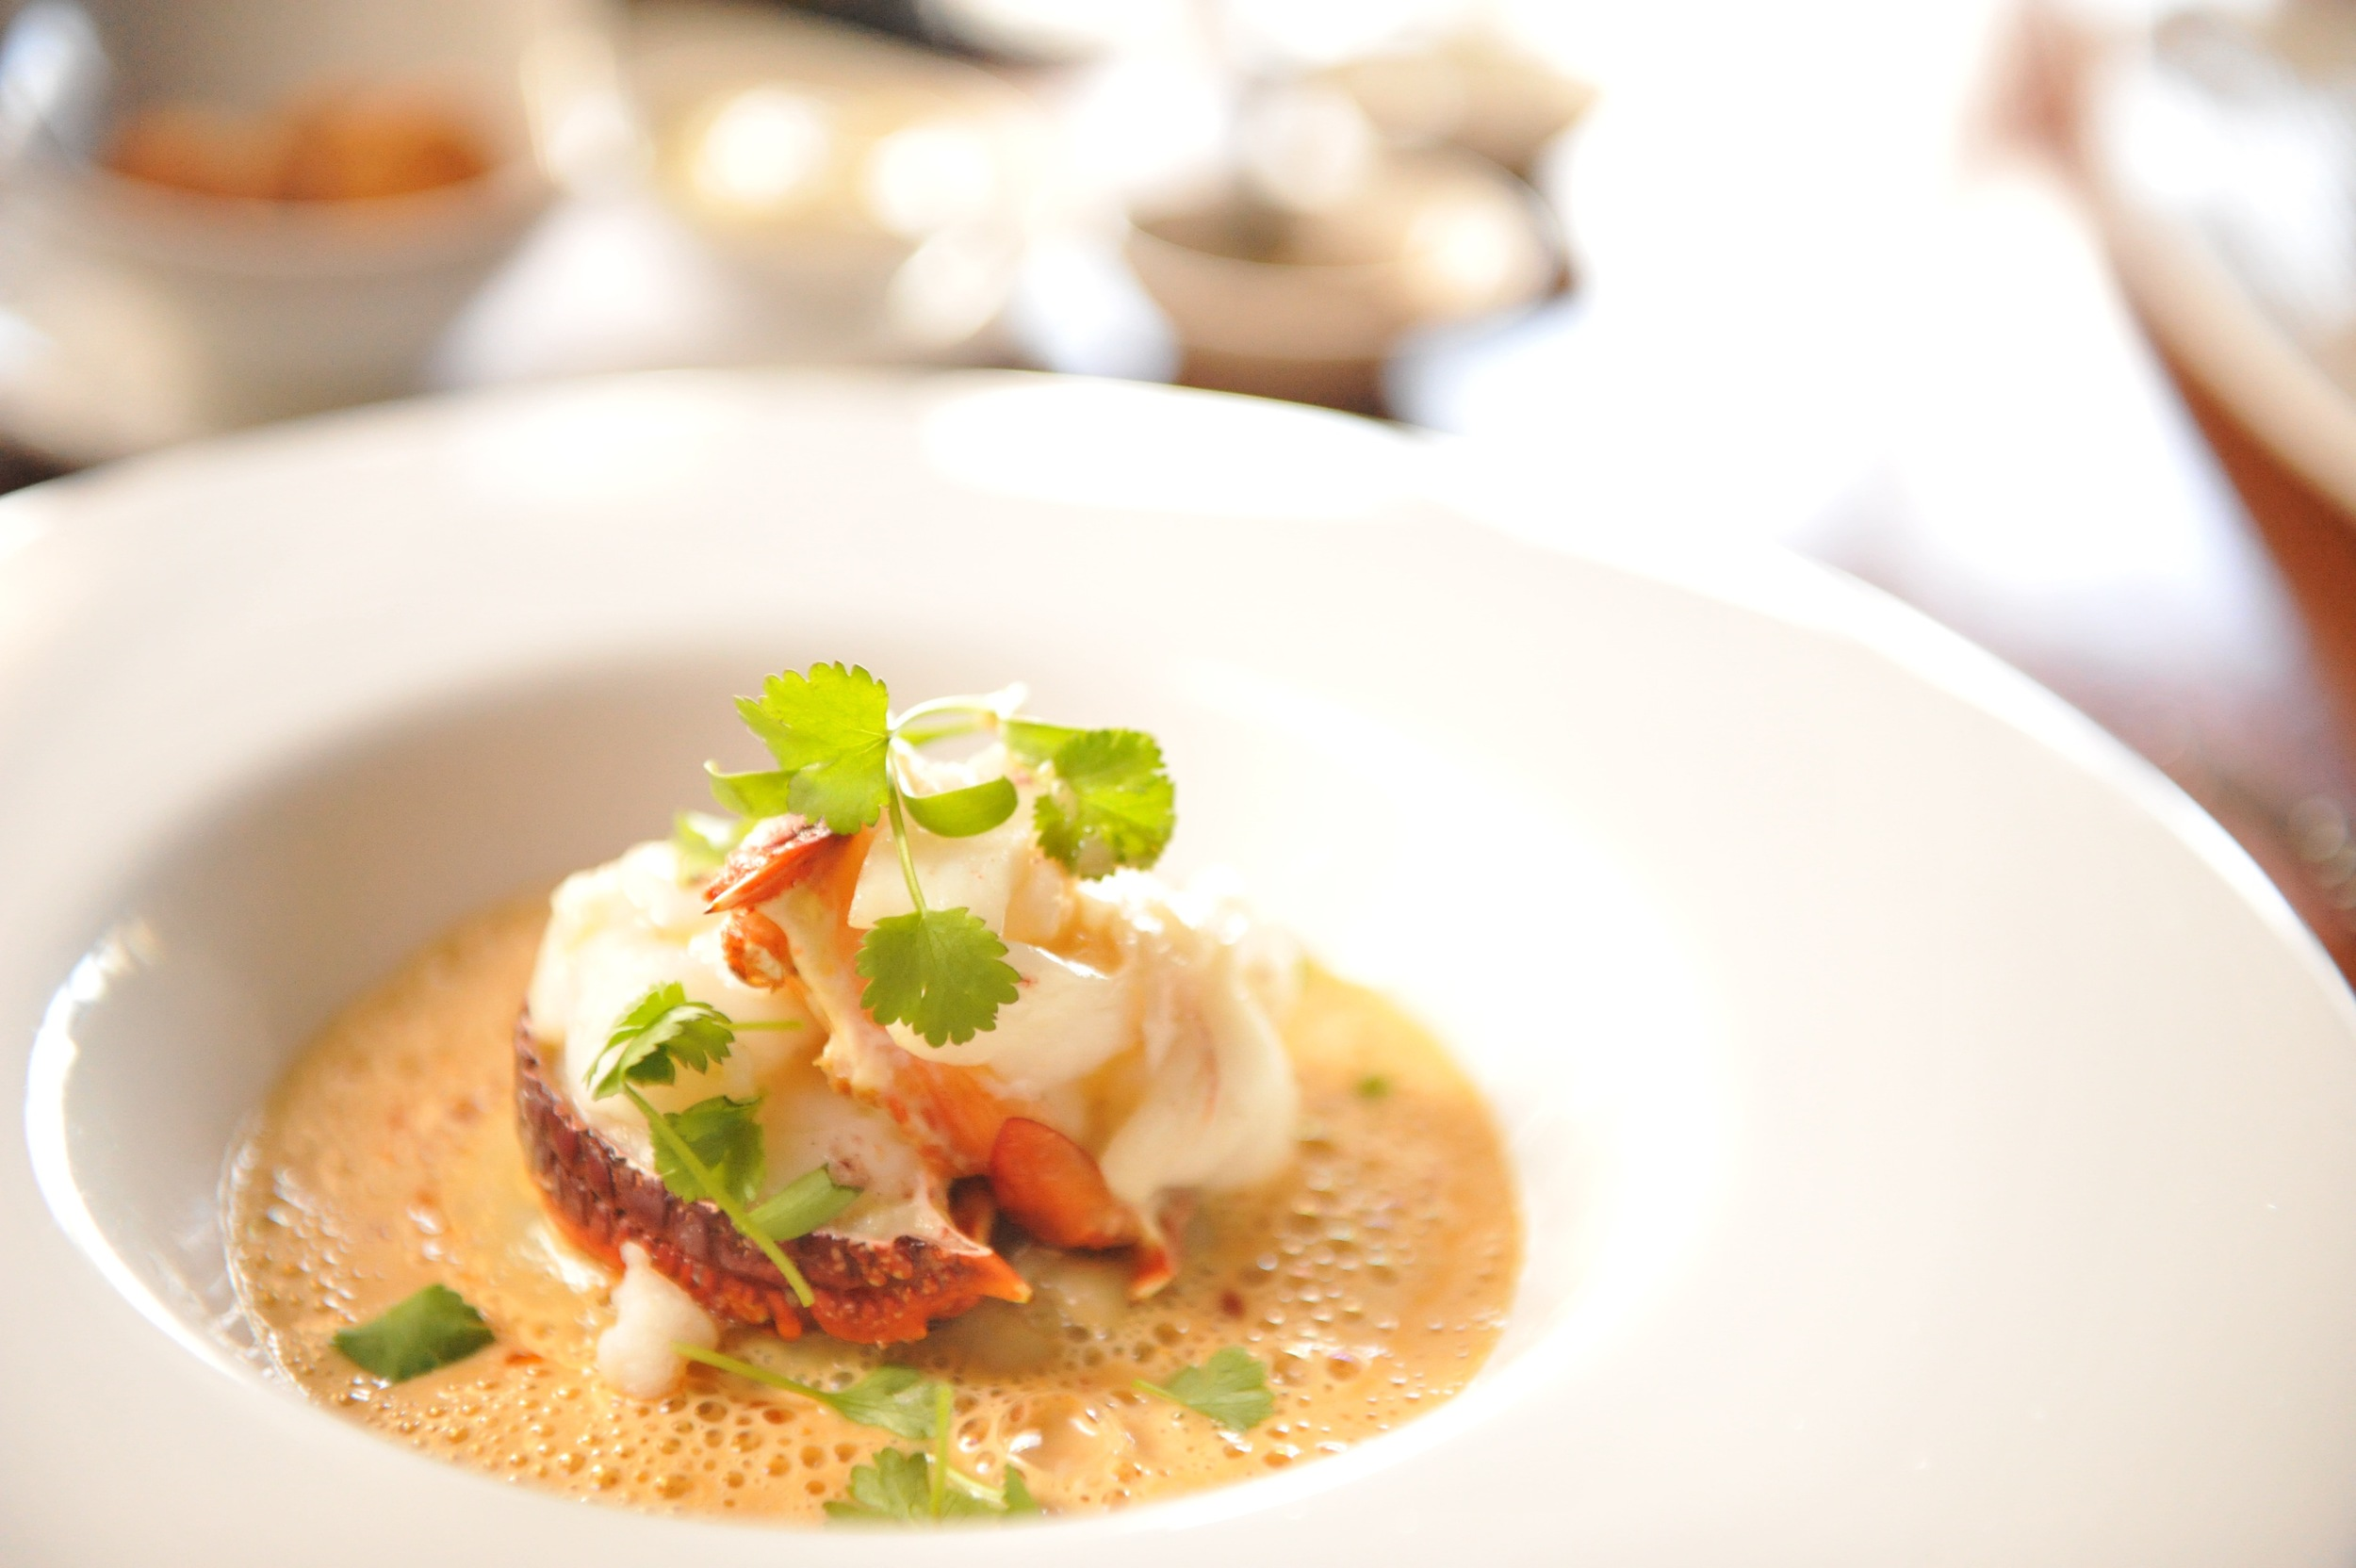 The house special of lobster medallions and bisque